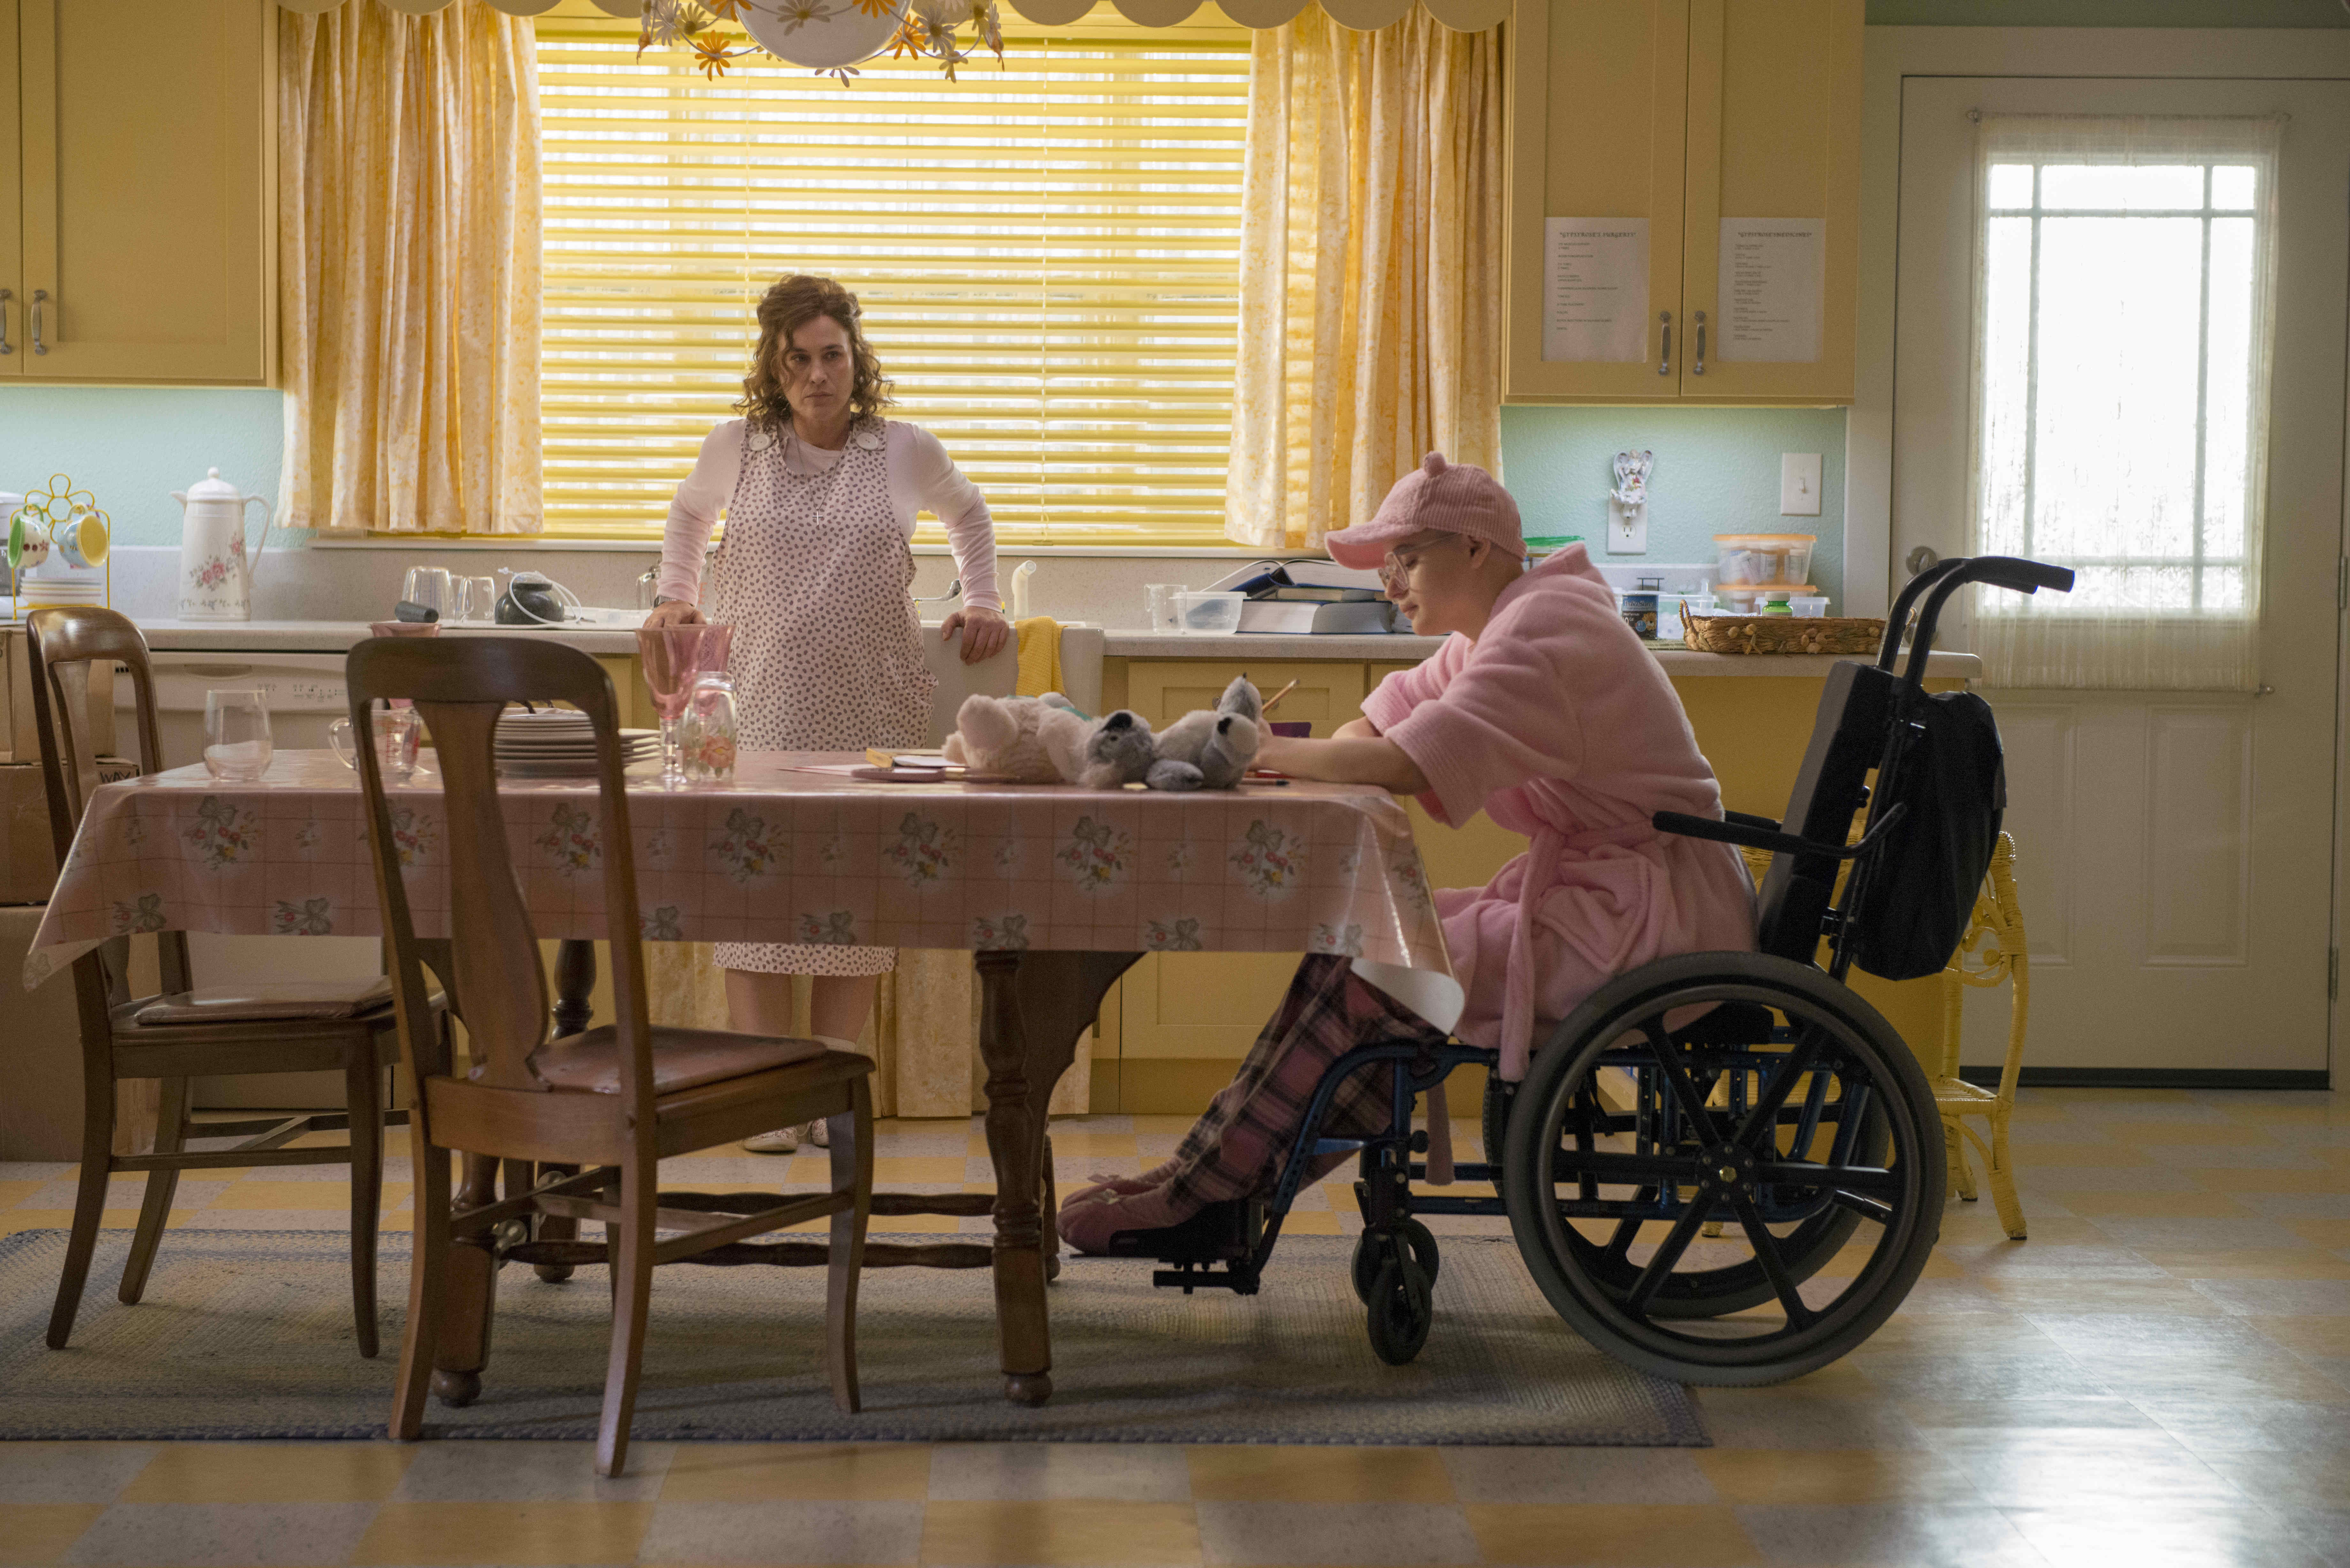 A woman stands at a kitchen table where another woman sits in a wheelchair.